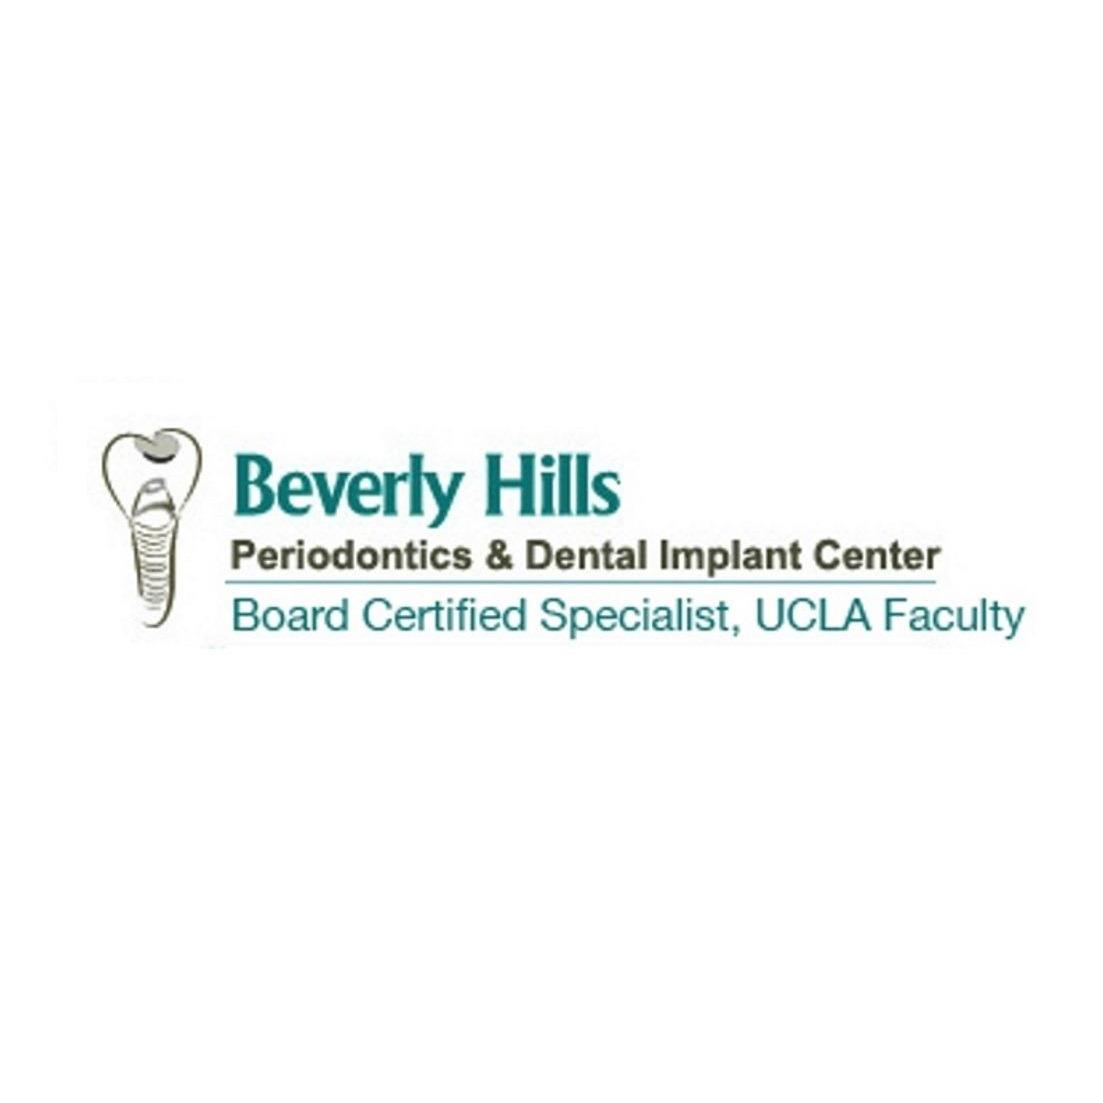 Beverly Hills Periodontics & Dental Implant Center